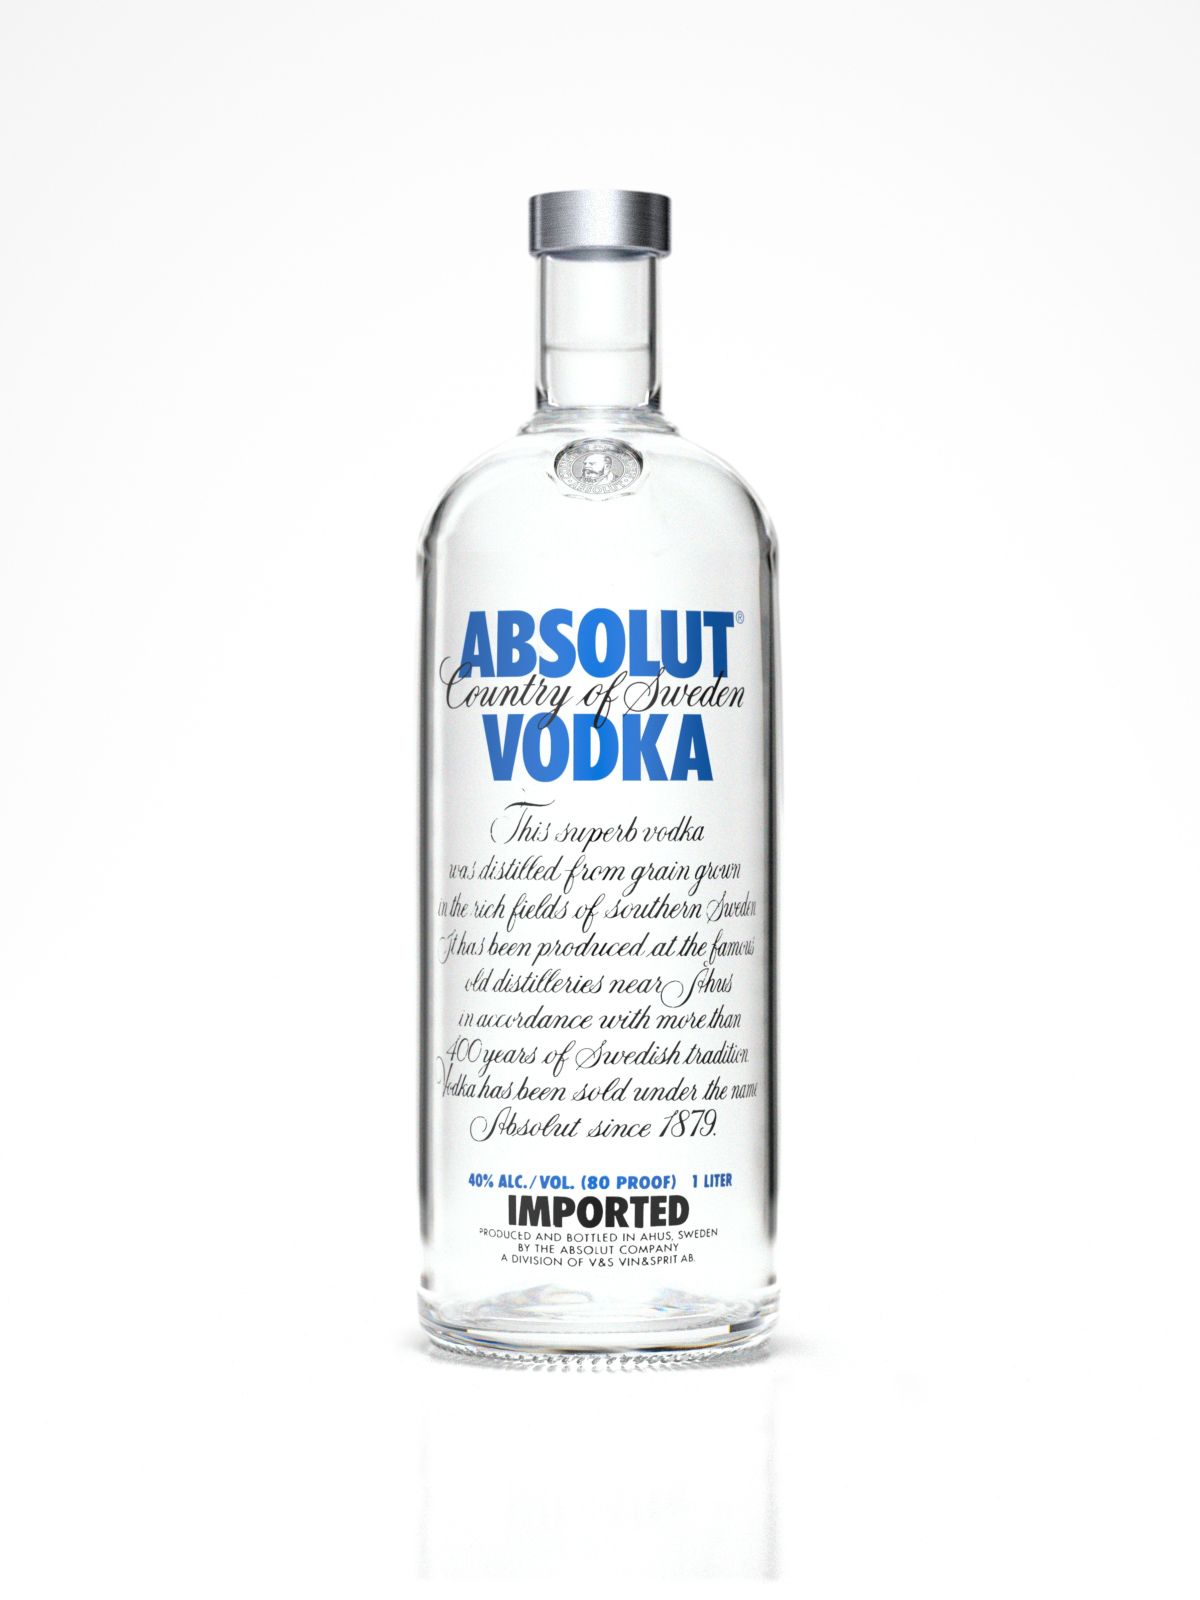 Absolut High Quality Background on Wallpapers Vista